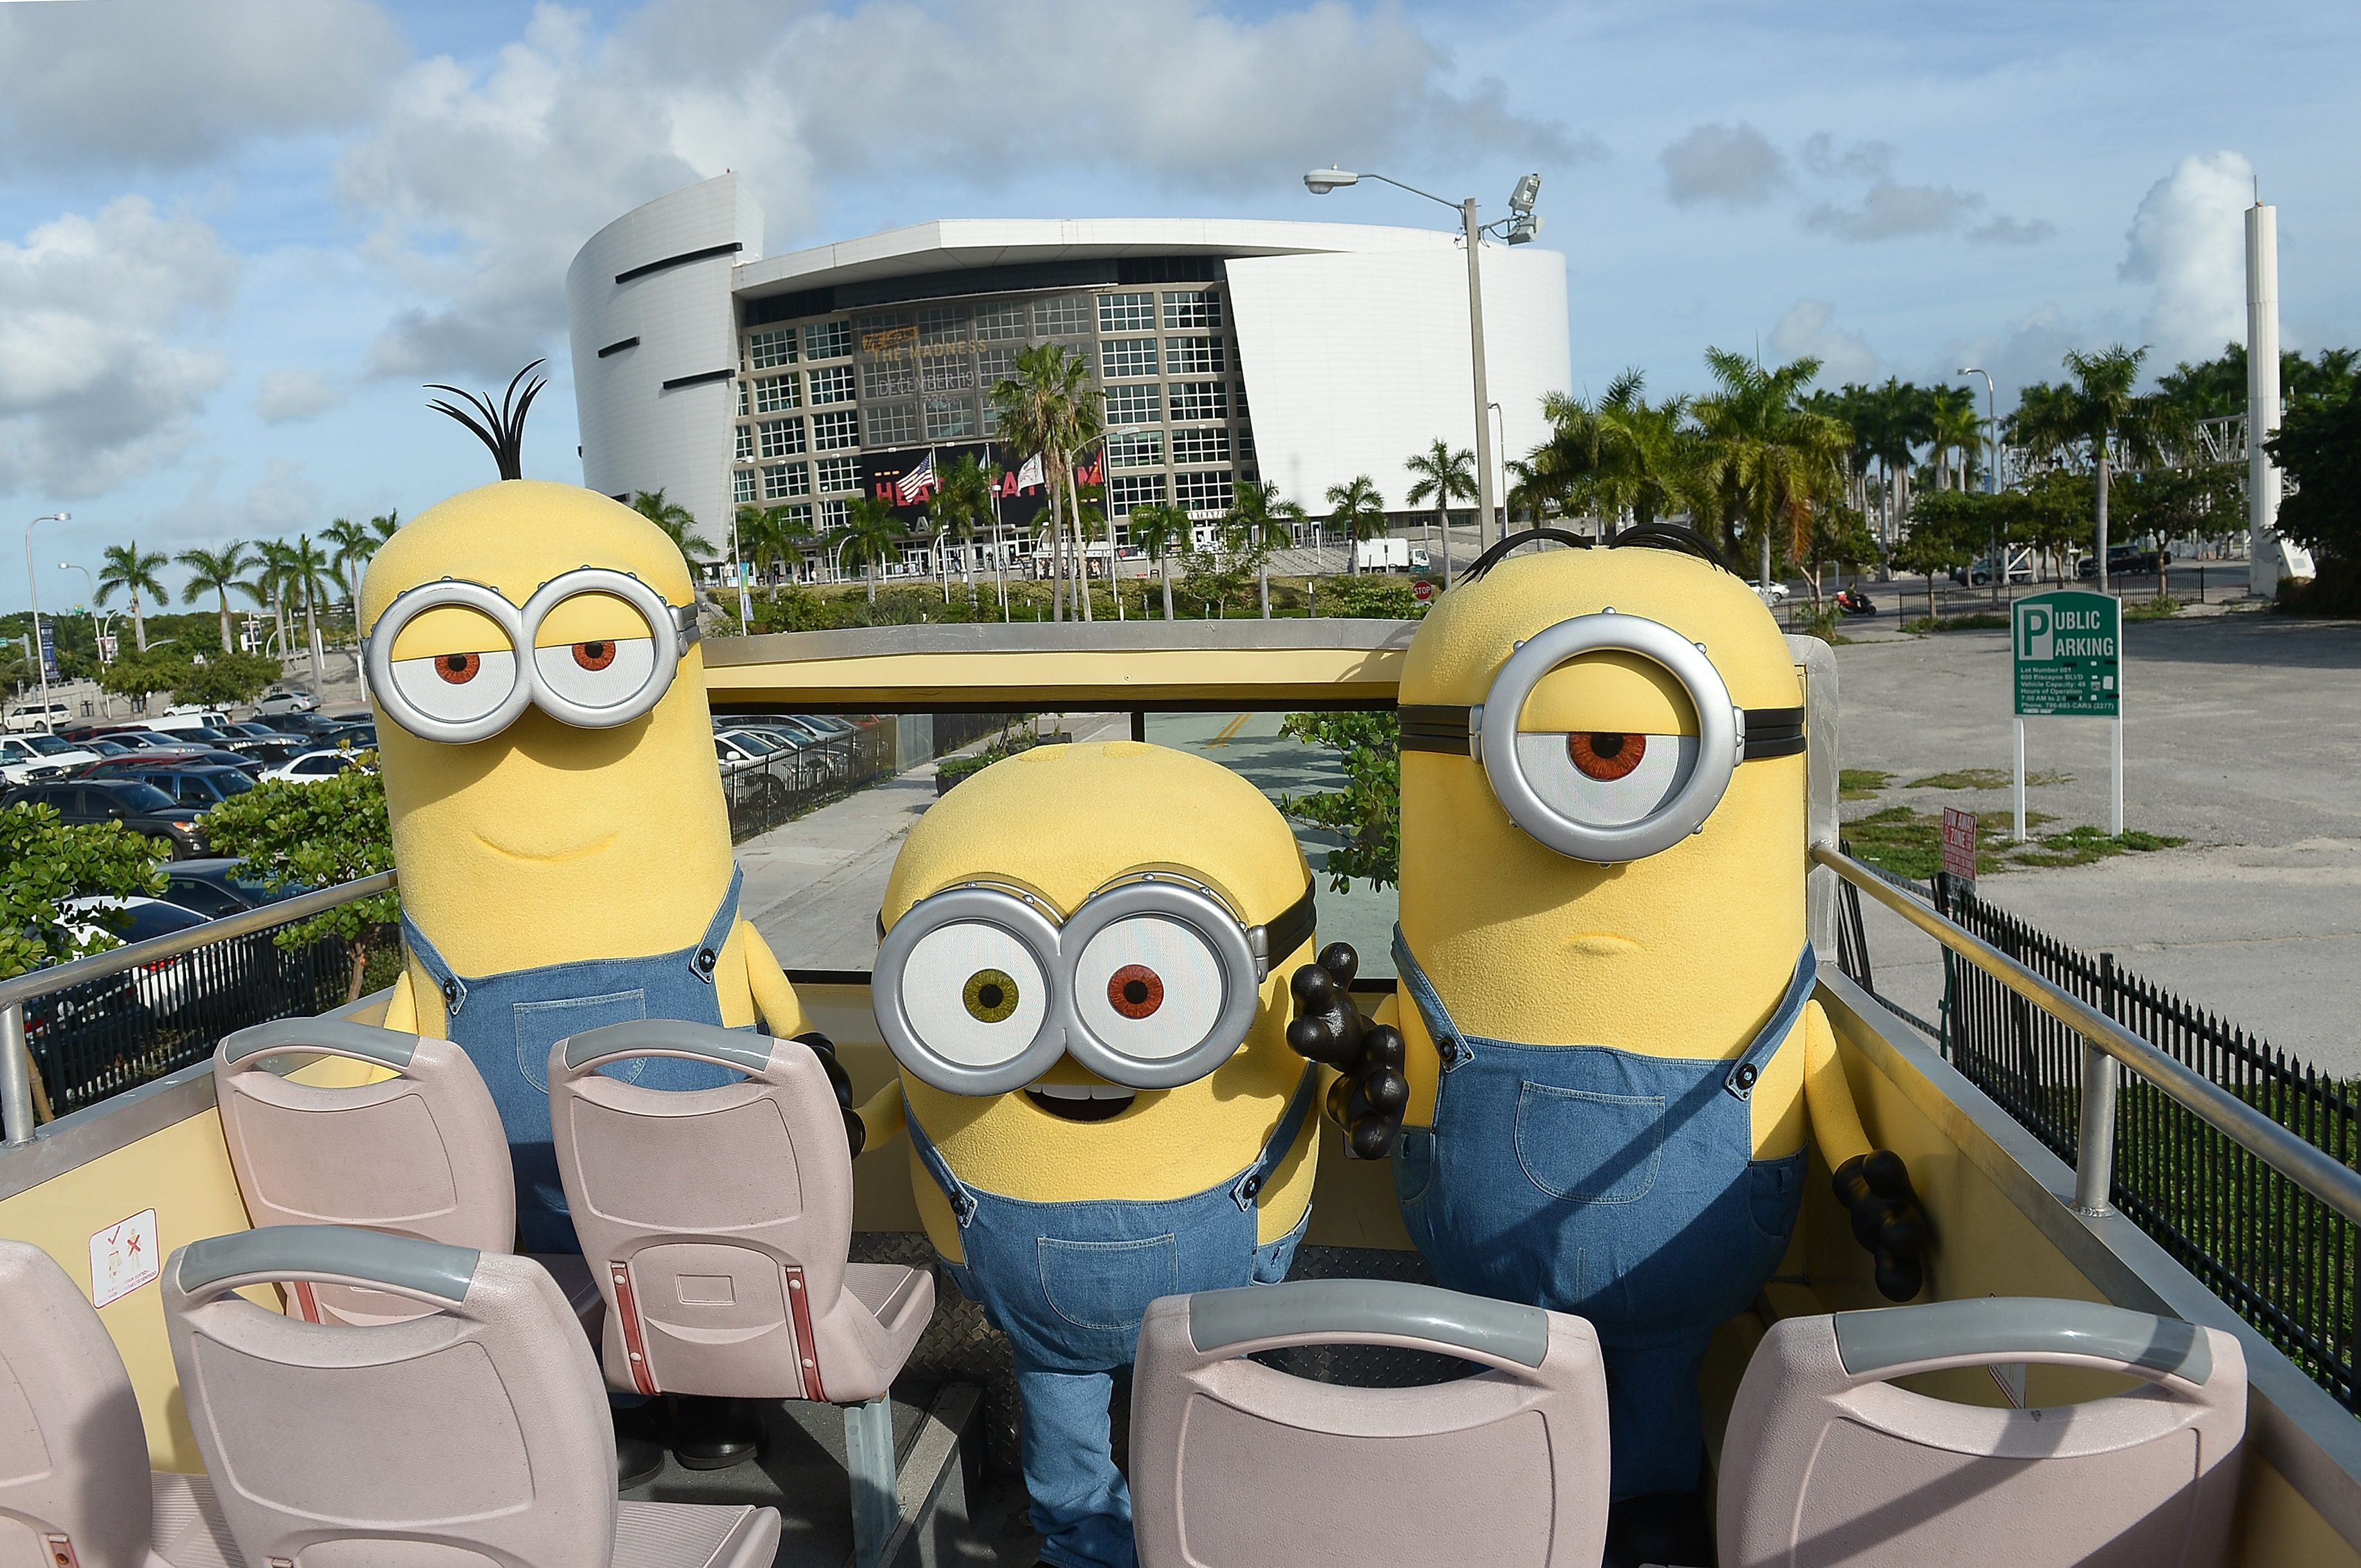 MIAMI, FL - NOVEMBER 19:  Minions Kevin, Stuart and Bob make an appearance on CitySightseeing Miami Hop on Hop off tour while in Miami for the NASCAR Ford Championship Weekend and the upcoming home entertainment release of Minions on digital HD on November 24 and Blu-ray & DVD December 8, on November 19, 2015 in Miami, Florida.  (Photo by Gustavo Caballero/Getty Images For Universal Pictures Home Entertainment)